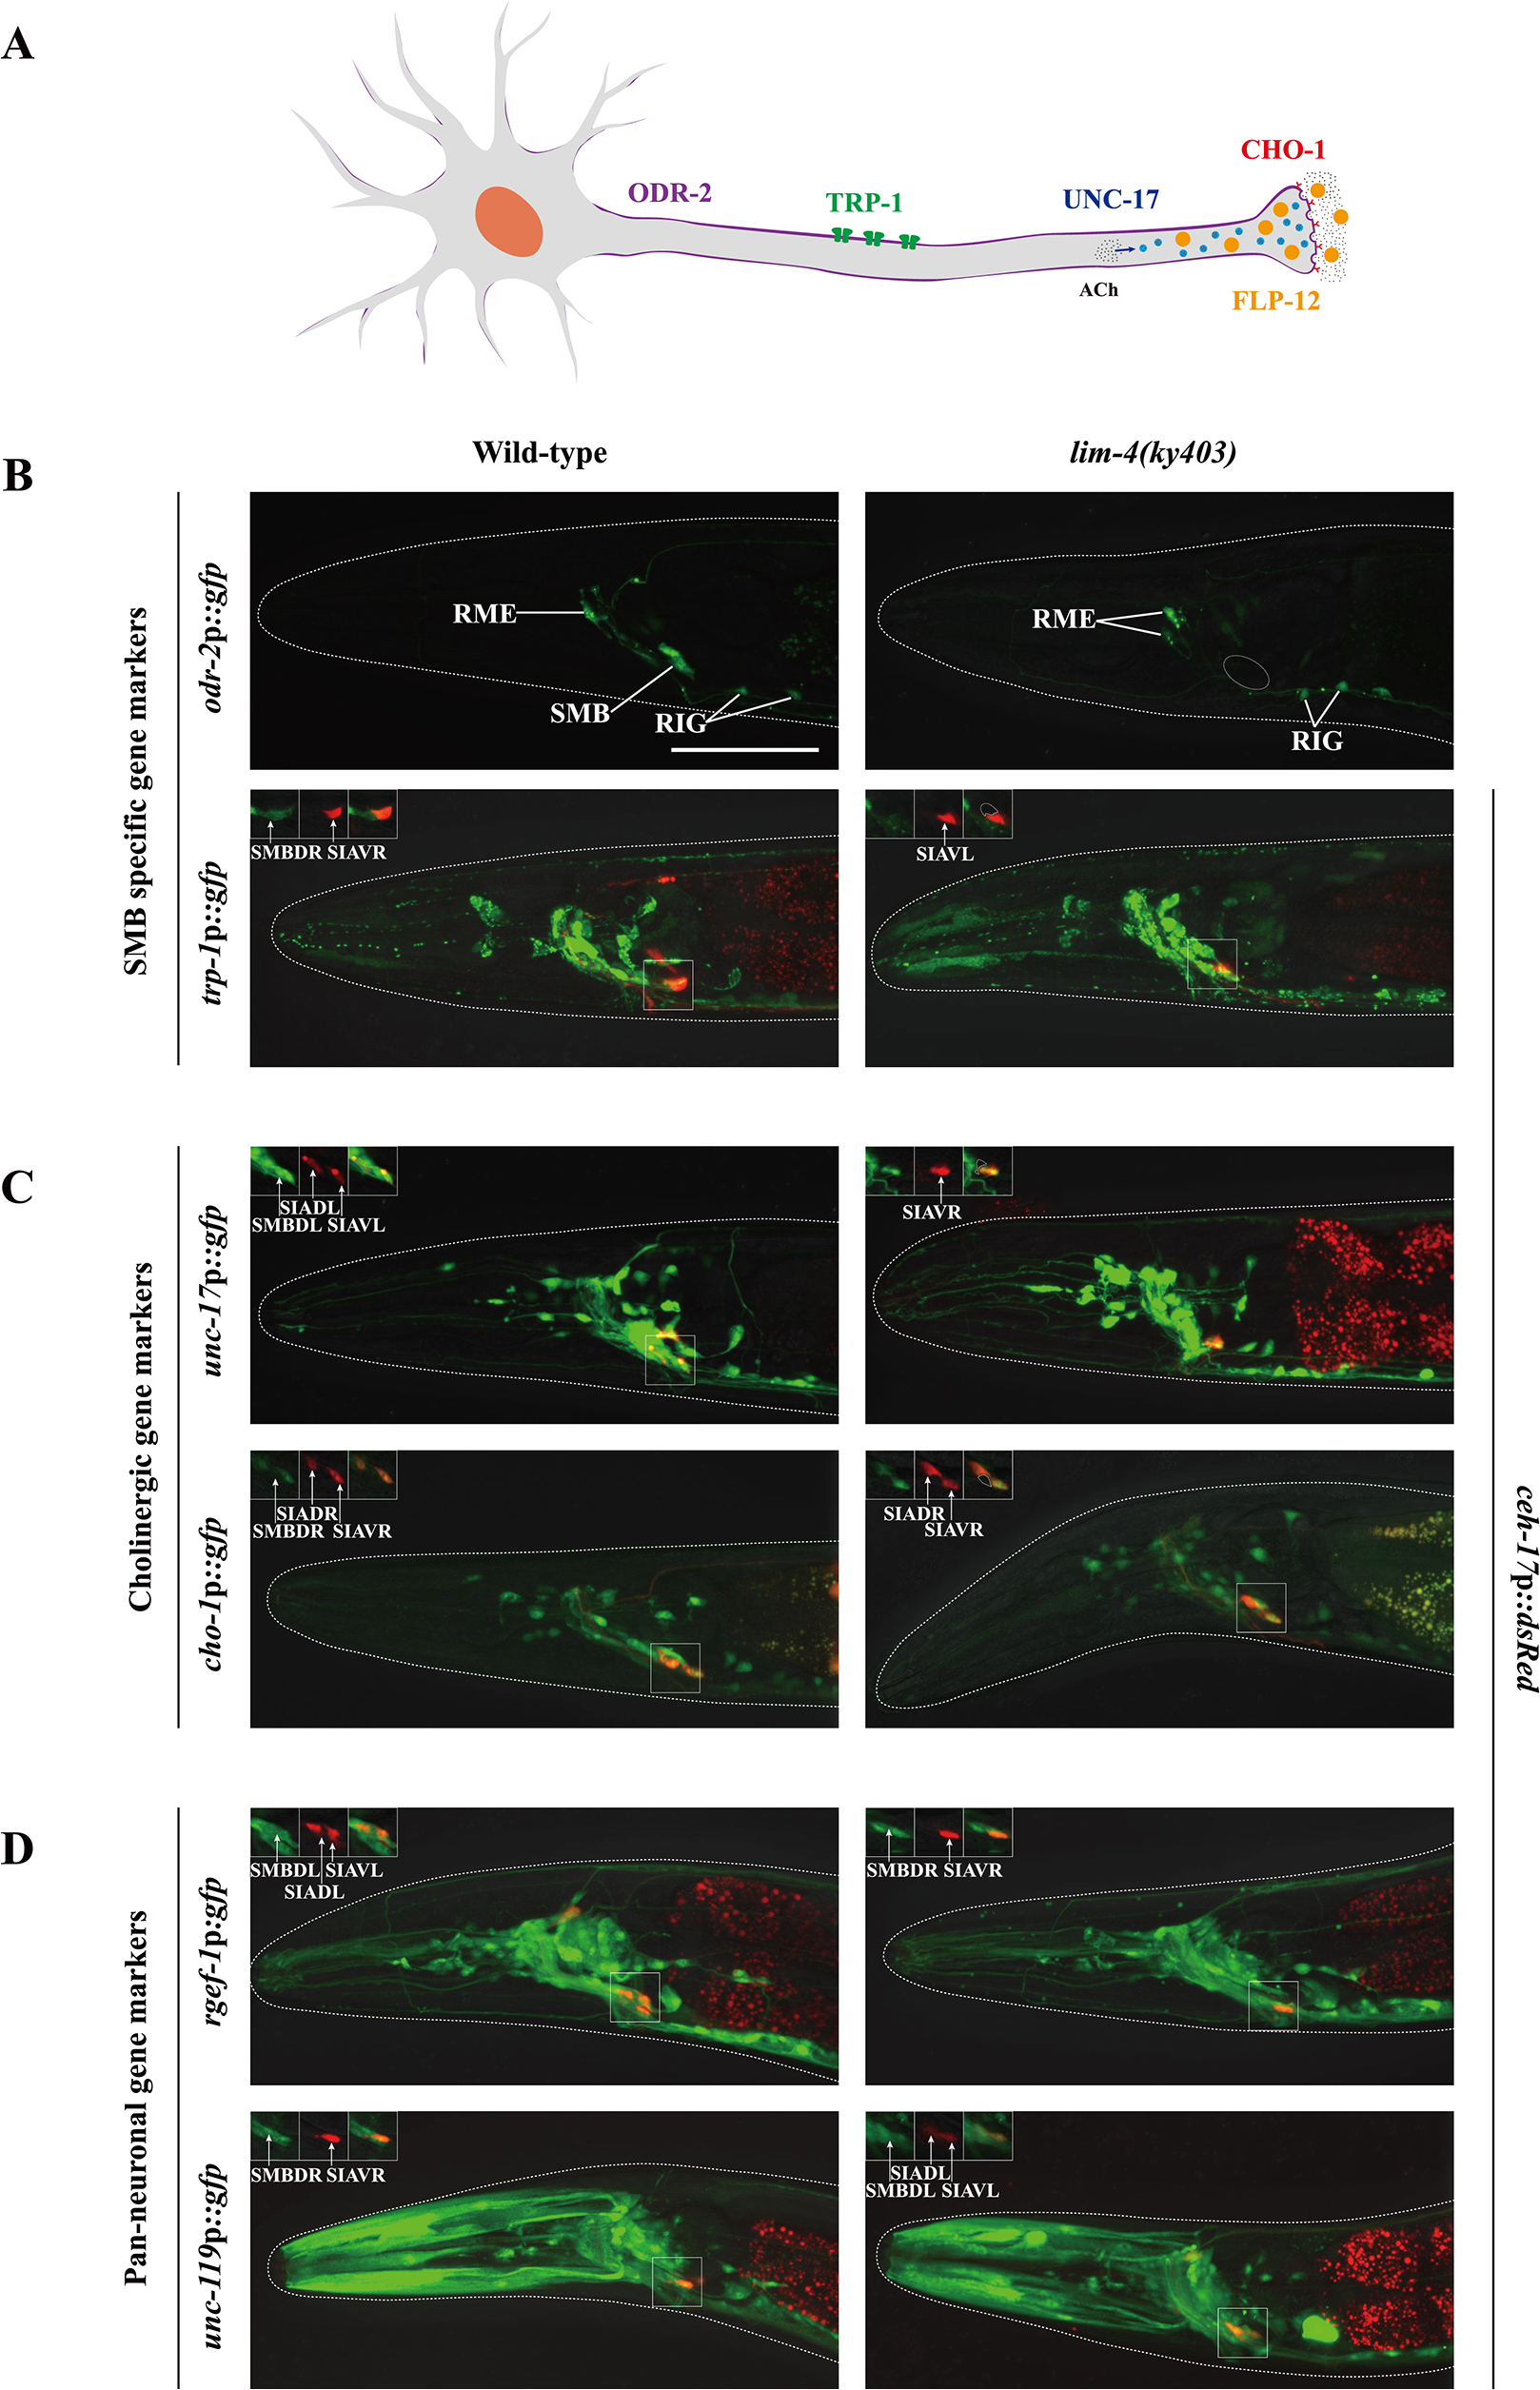 LIM-4 regulates expression of the terminally differentiated markers in the SMB neurons.